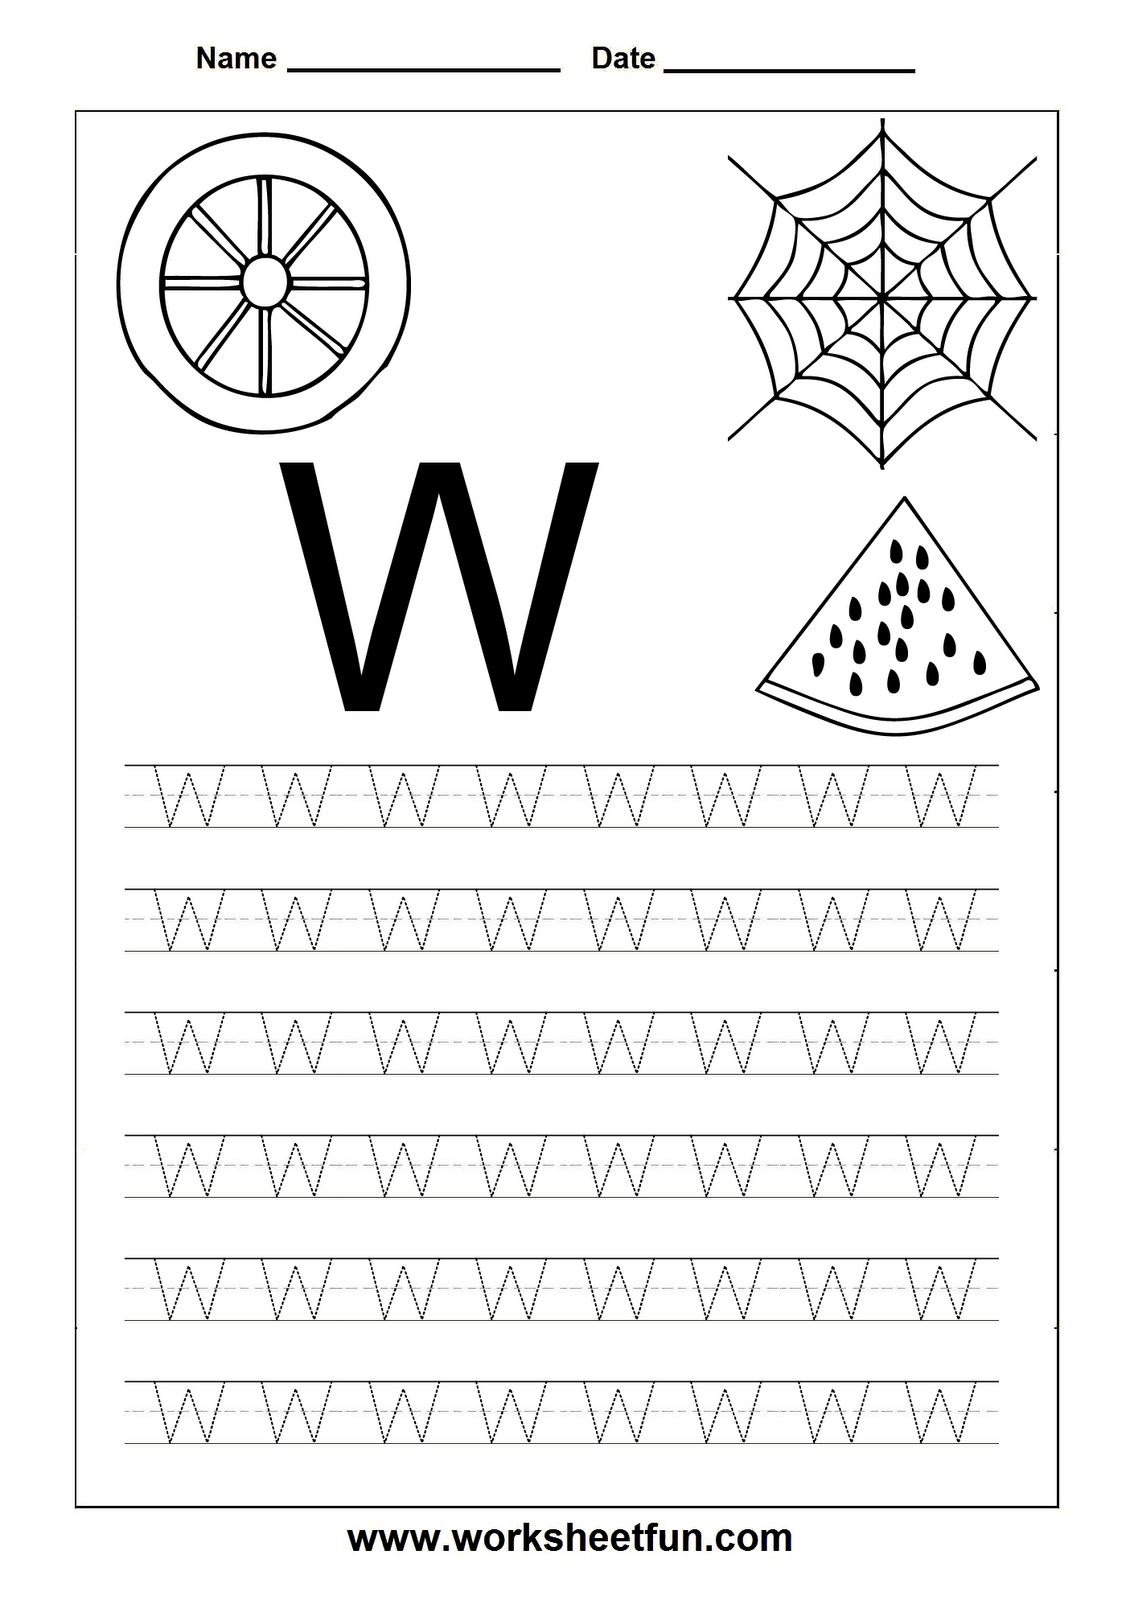 Free Printable Worksheets Letter Tracing Worksheets For